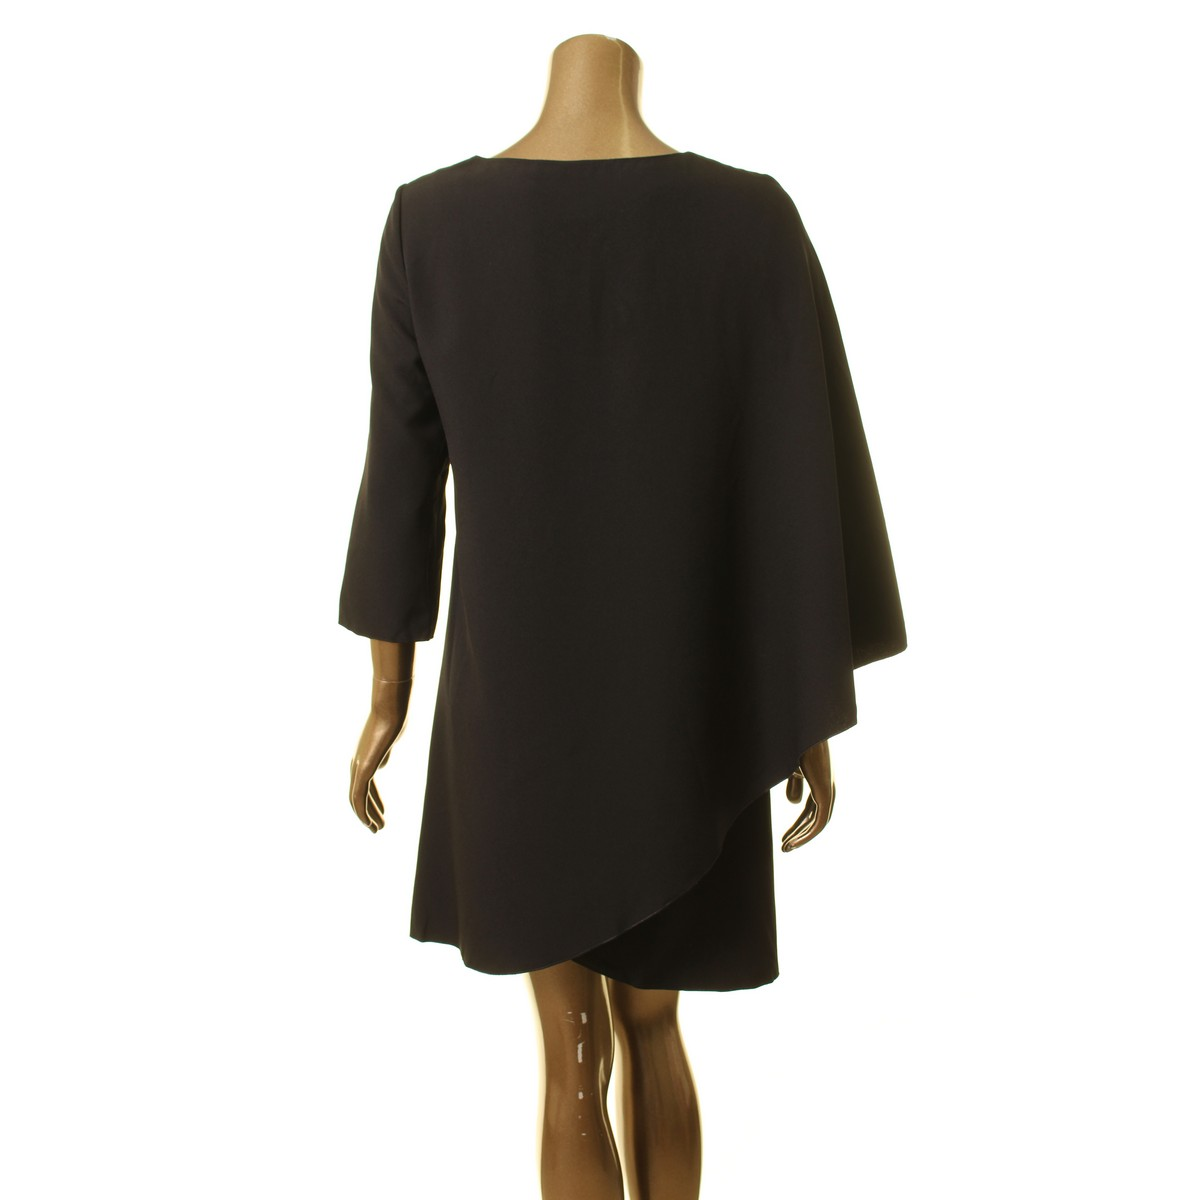 ANNE-KLEIN-NEW-Women-039-s-Cape-Crepe-Split-Sleeve-Shift-Dress-TEDO thumbnail 6